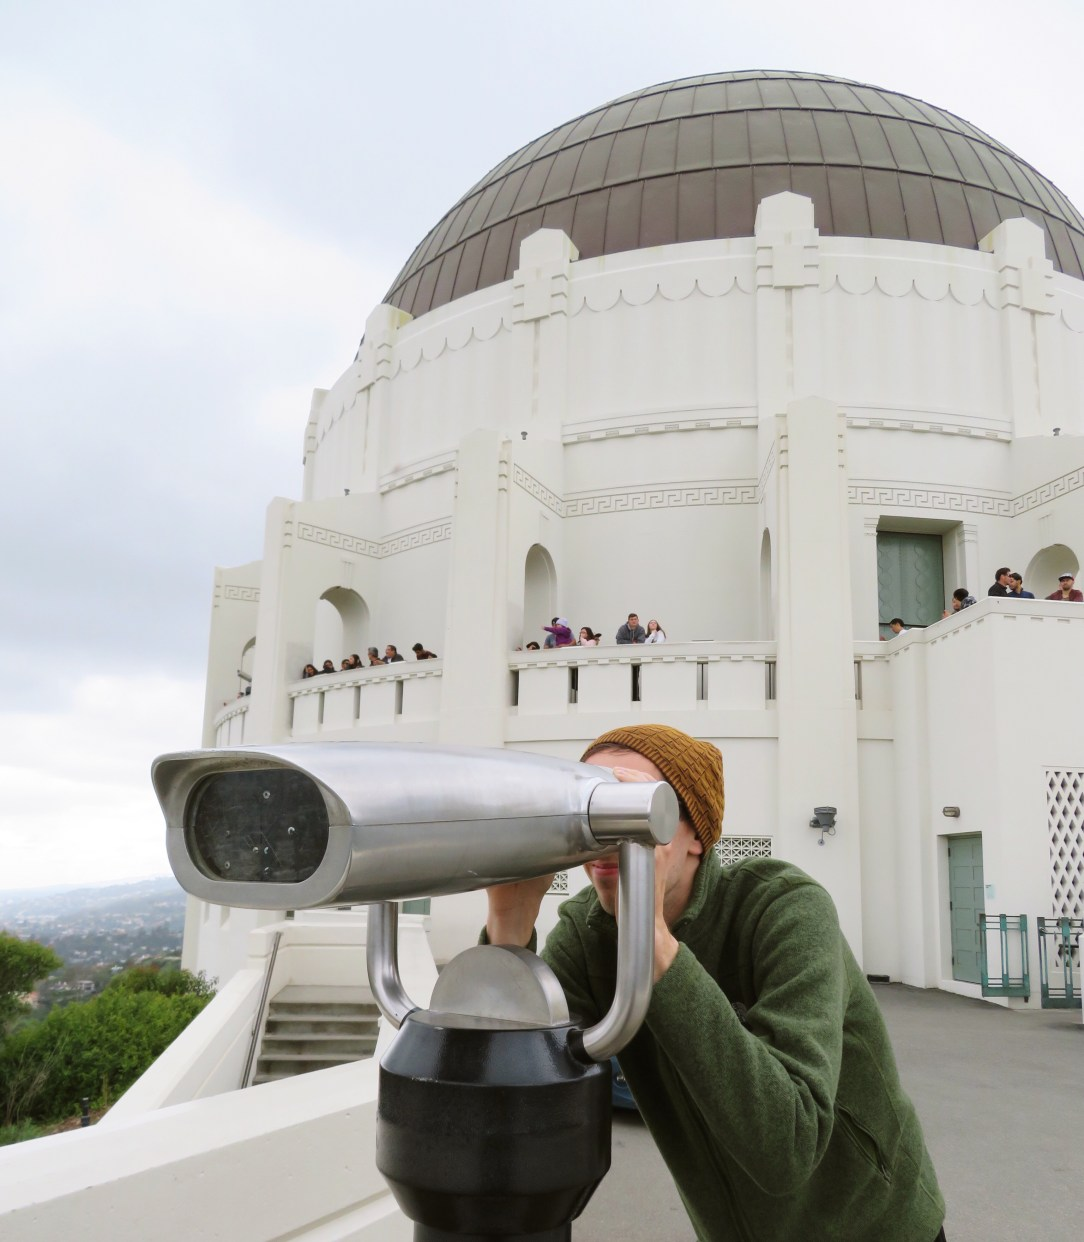 Visiting the Griffith Observatory